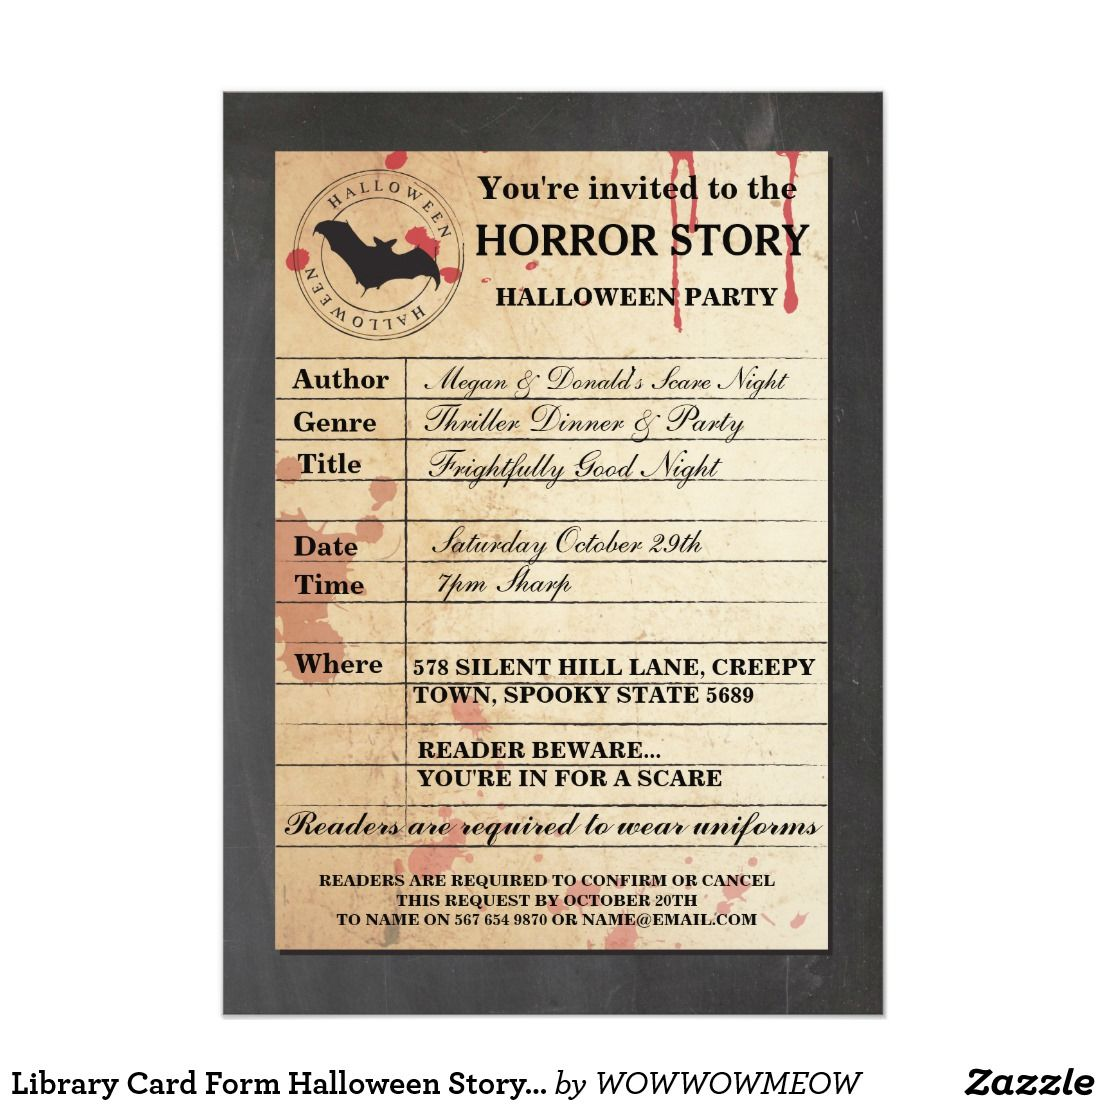 Library Card Form Halloween Story Party Invitation